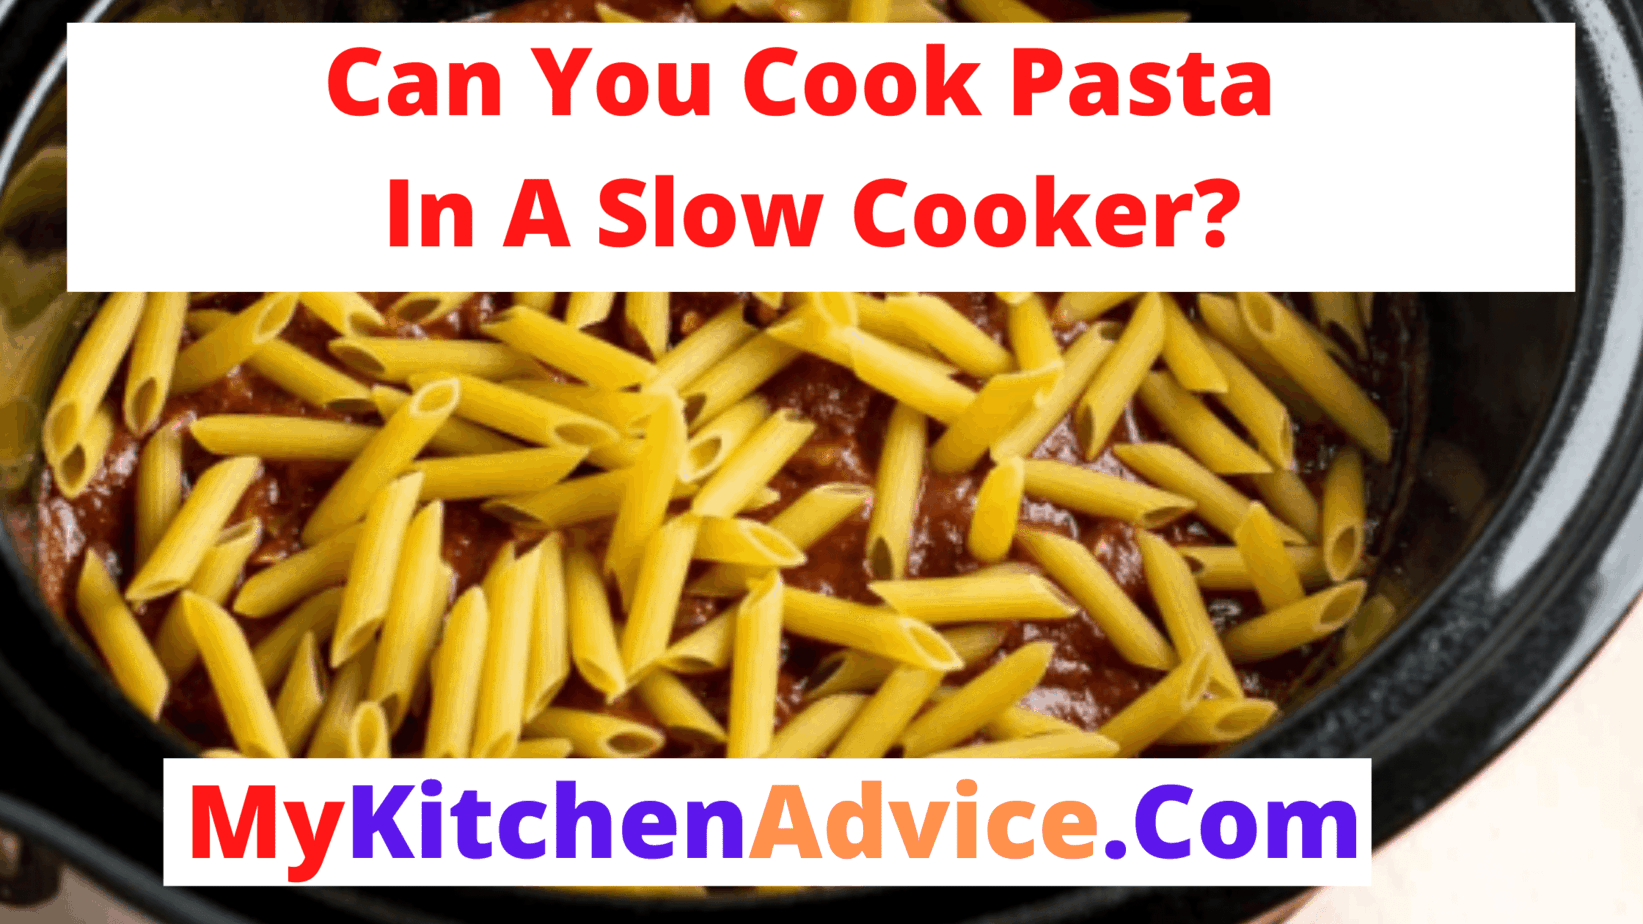 can you cook pasta in a slow cooker